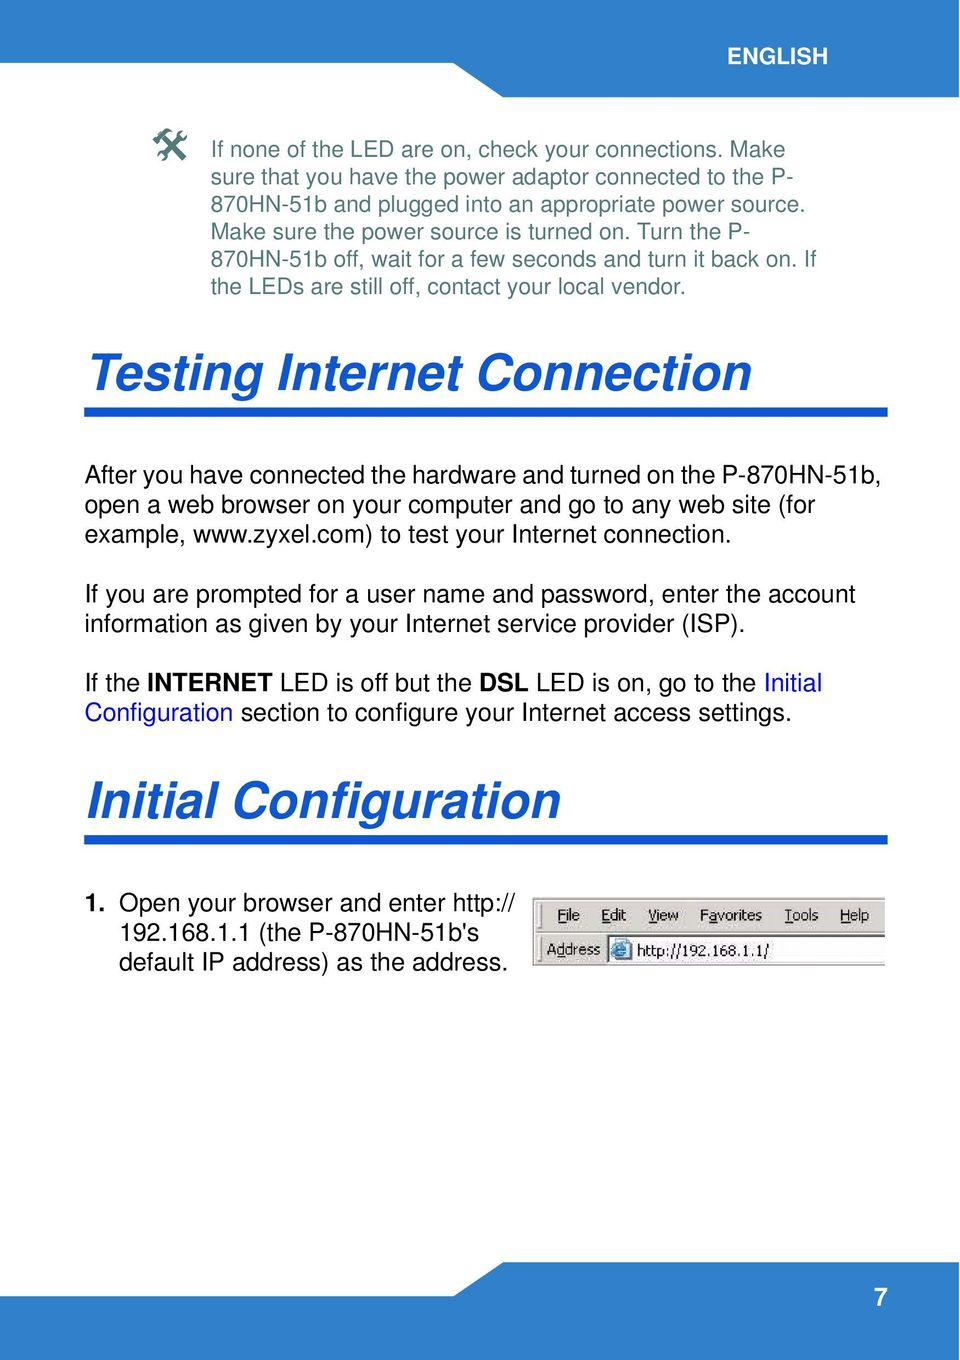 Testing Internet Connection After you have connected the hardware and turned on the P-870HN-51b, open a web browser on your computer and go to any web site (for example, www.zyxel.